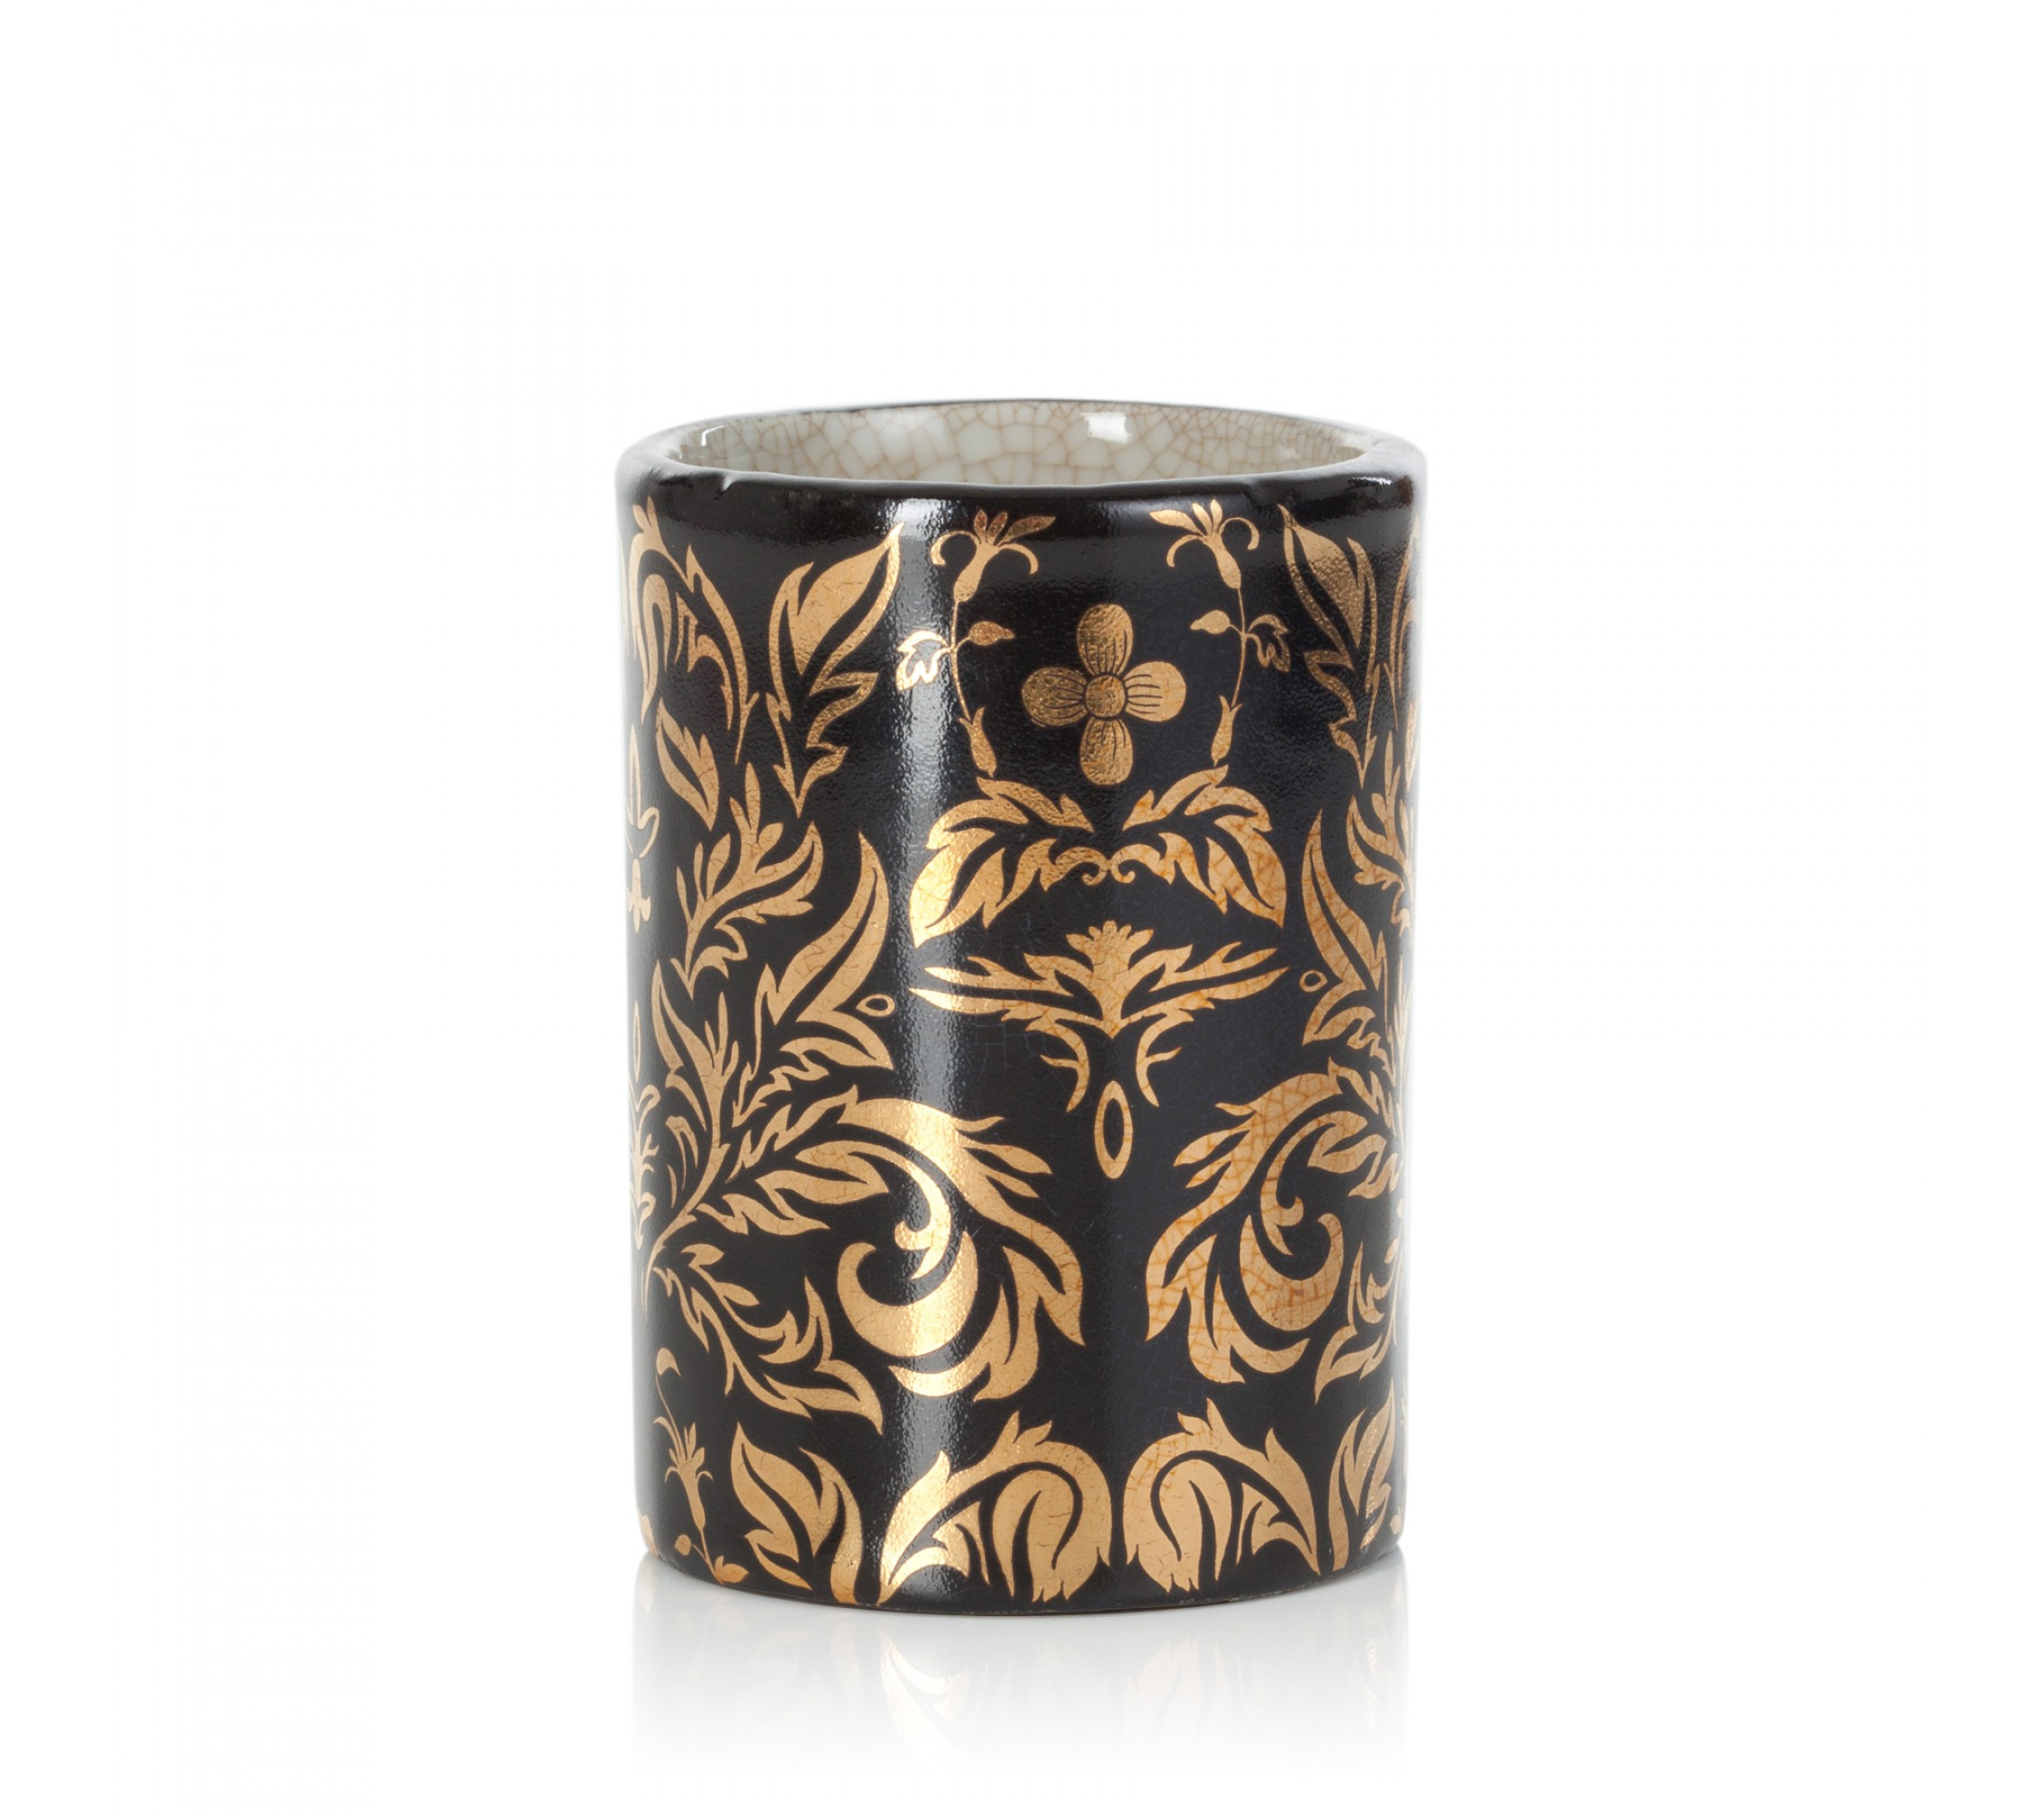 Stiftebecher - Pen Holder Black Tatoo